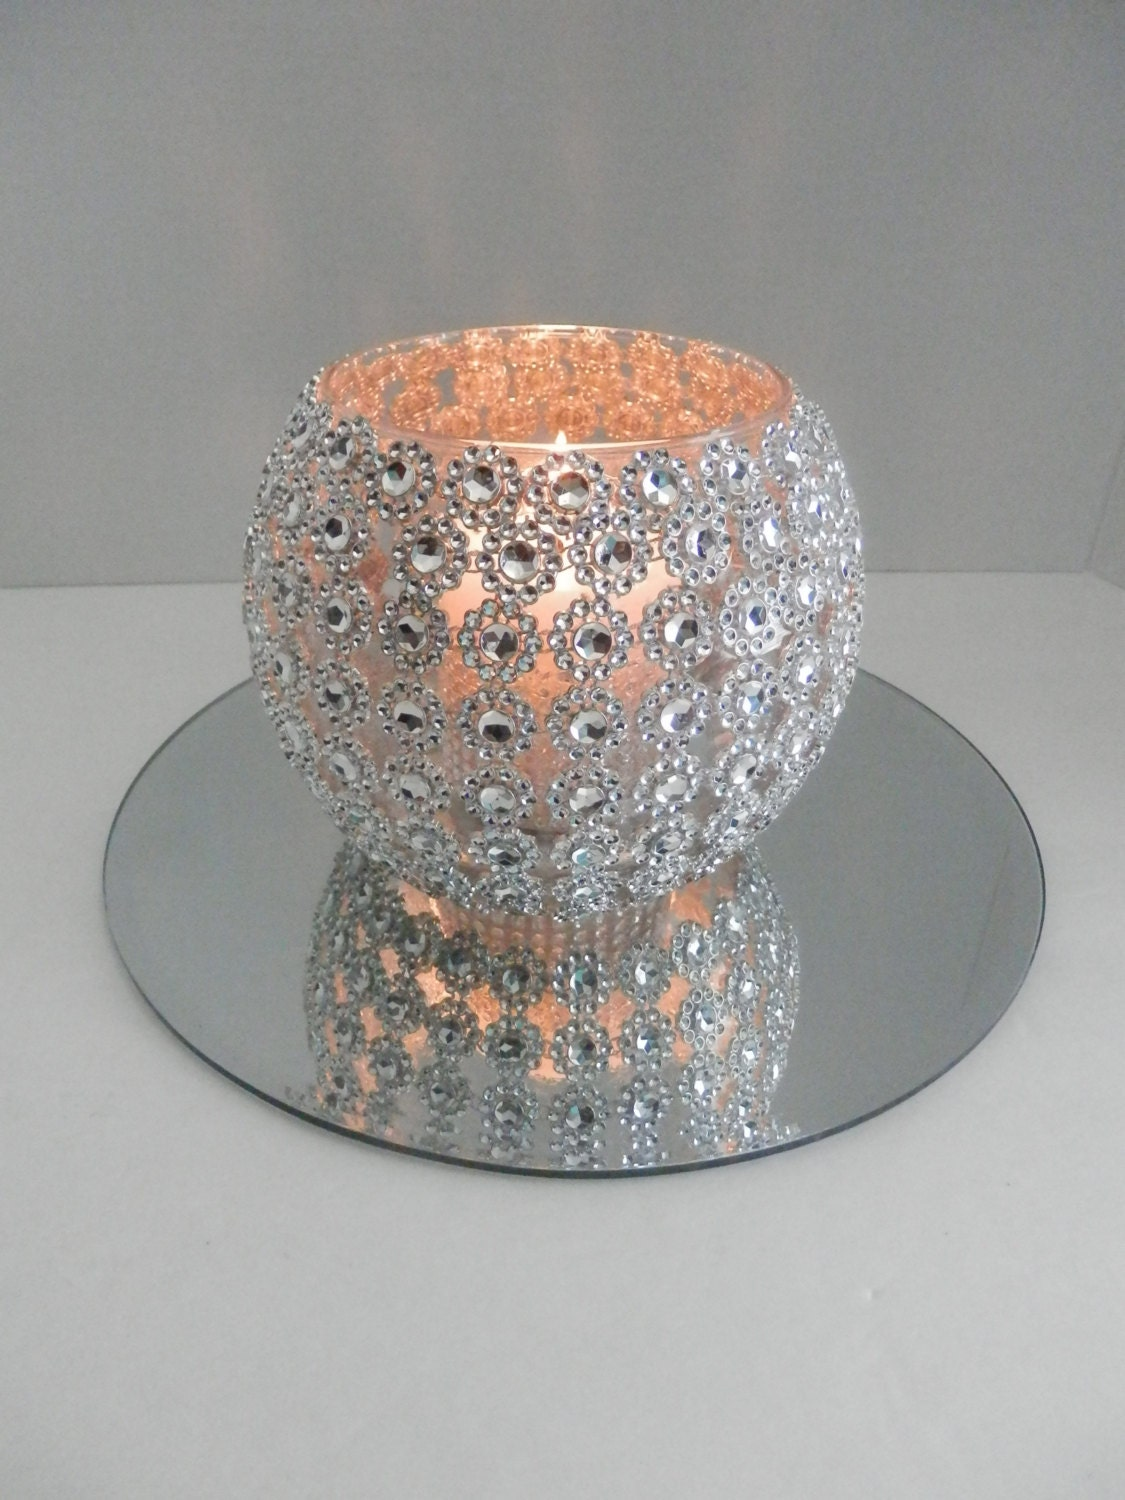 Sparkly Bling Nails: Wedding Centerpiece Bling Wedding Centerpiece With Round